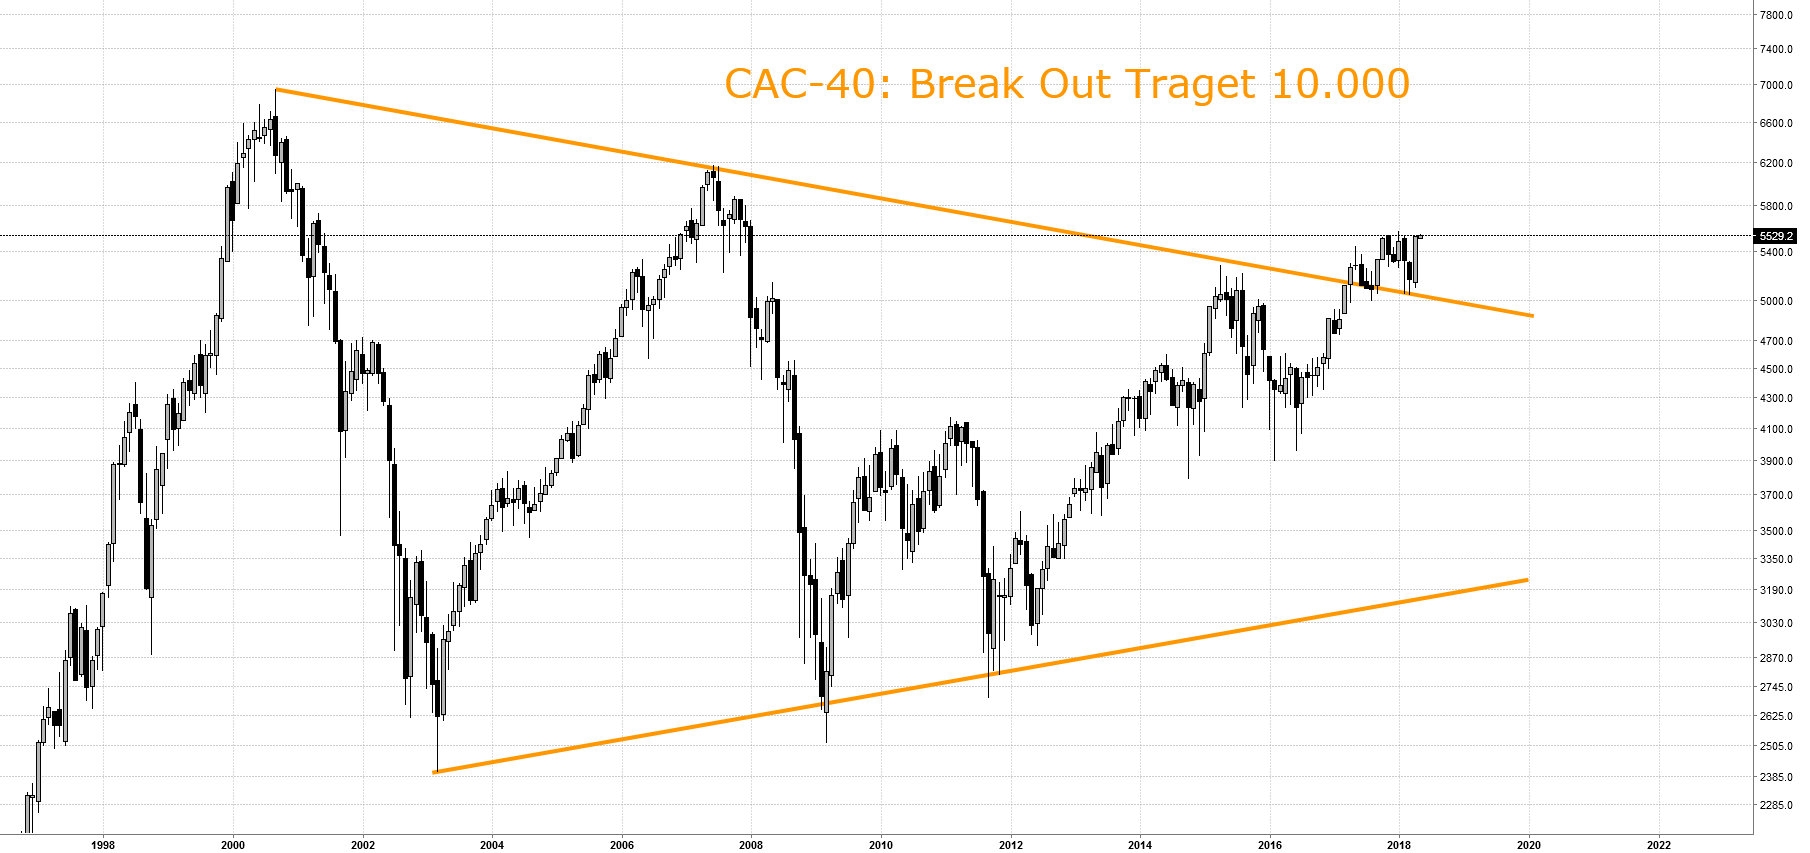 CAC-40: Break Out Traget 10.000